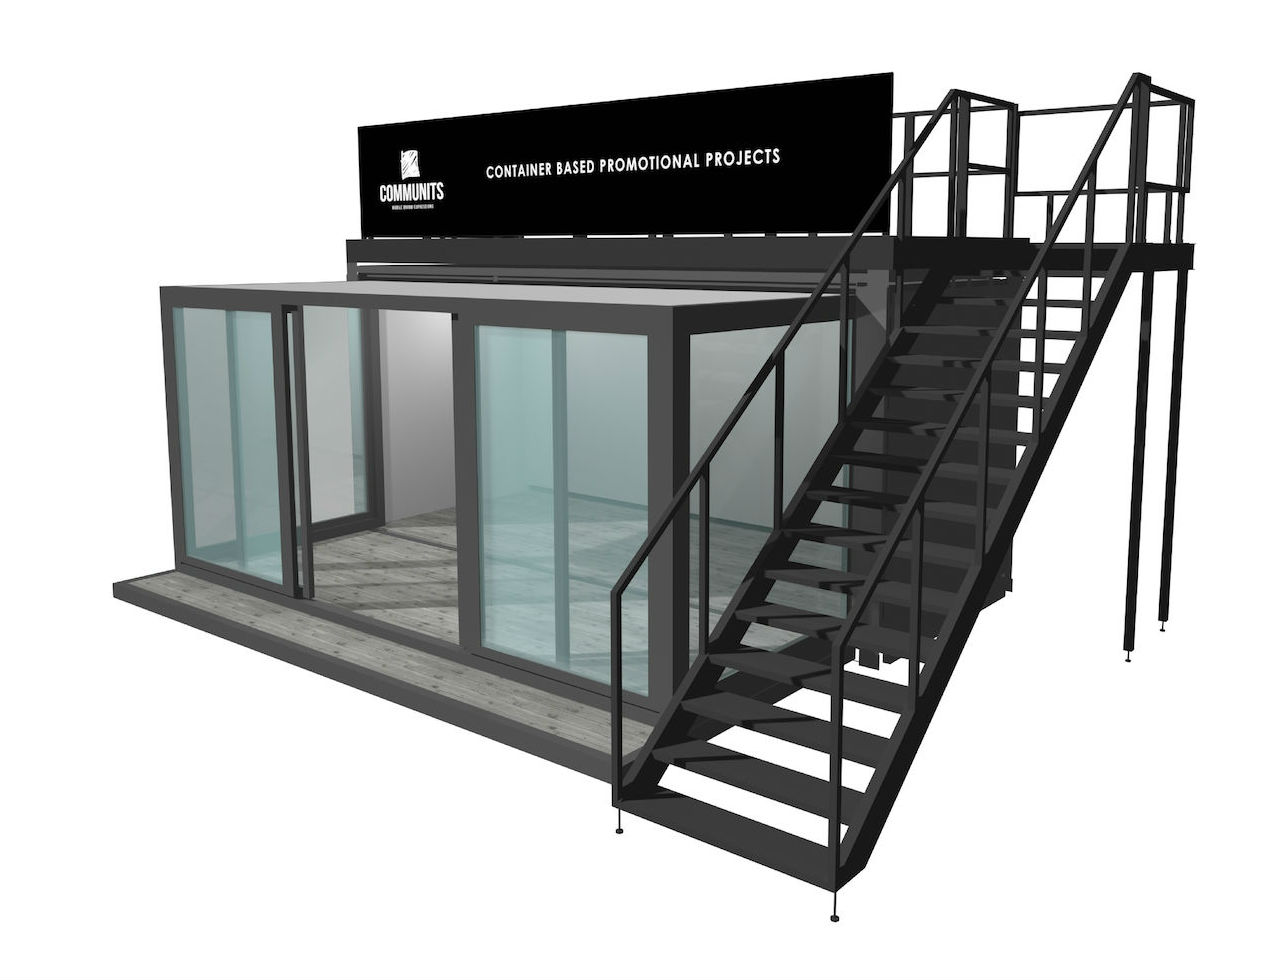 20 FT Uitschuifbare container voor evenementen pop-up shops en festivals